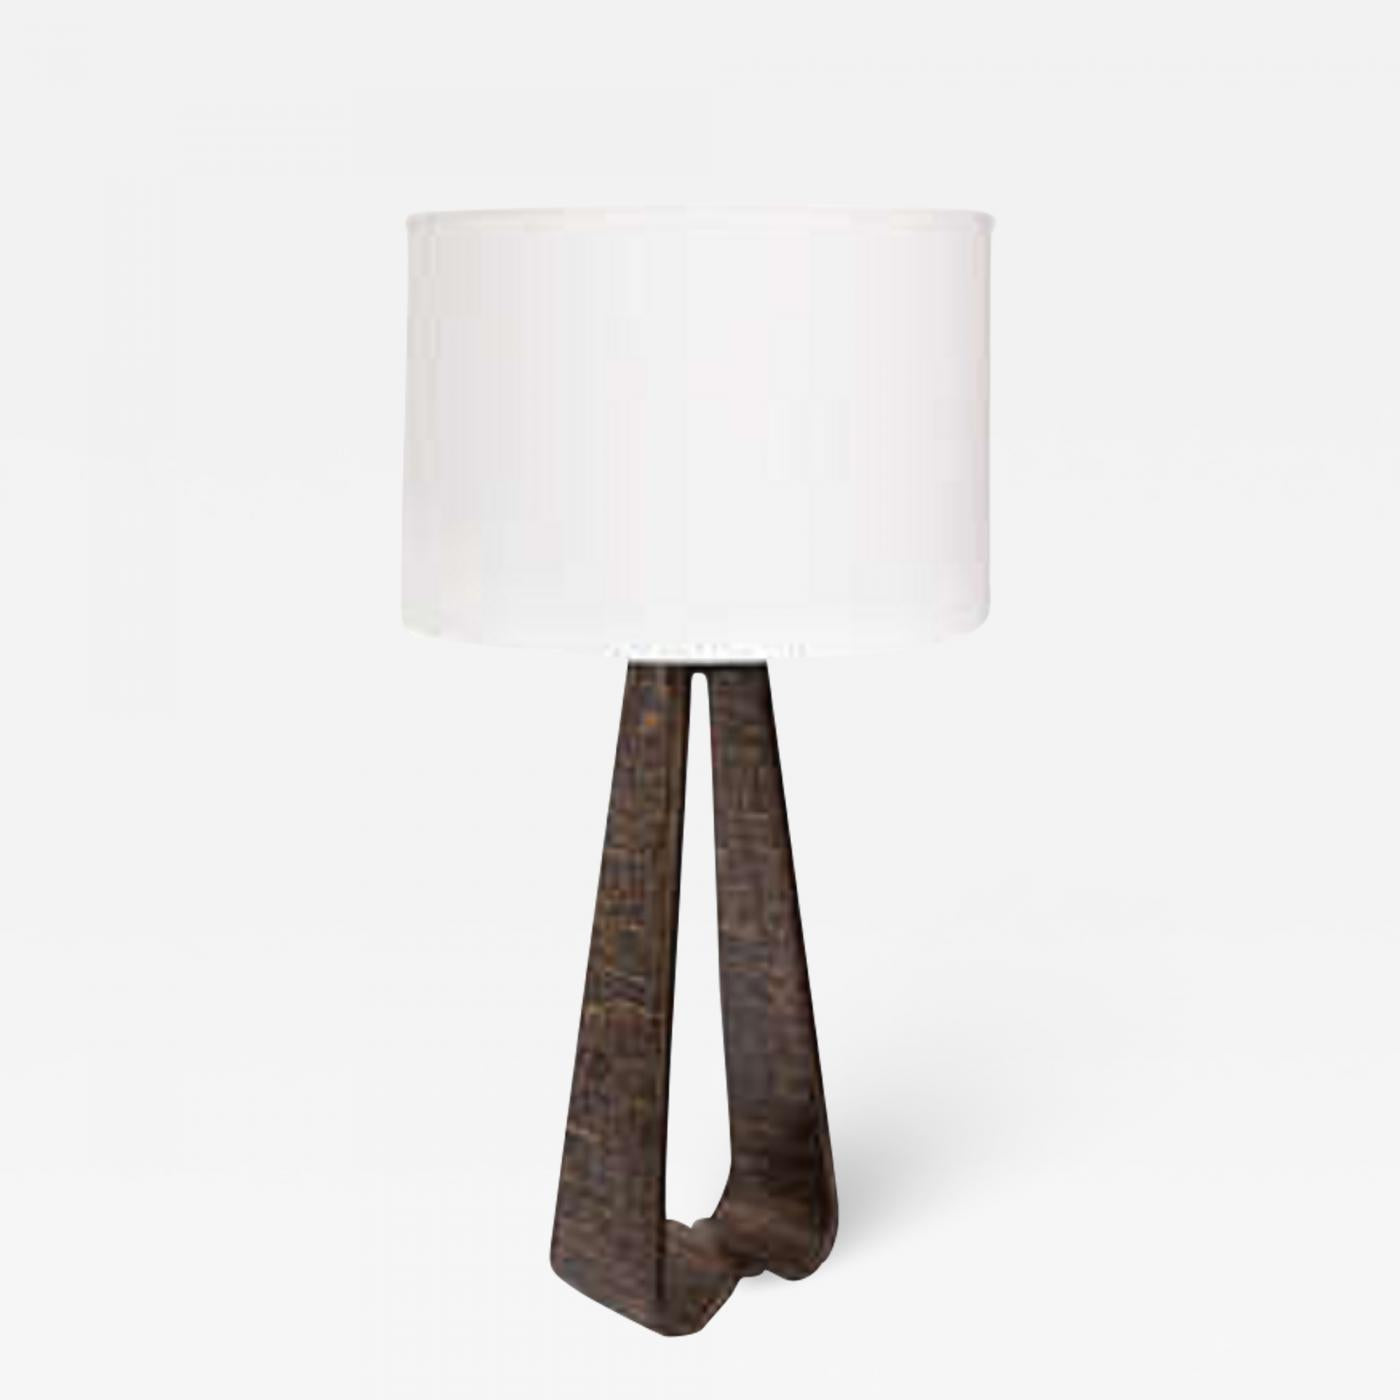 Fantoni (Attributed) Fantoni Table lamp Brutalist Mid Century Modern brass Italy 1960's